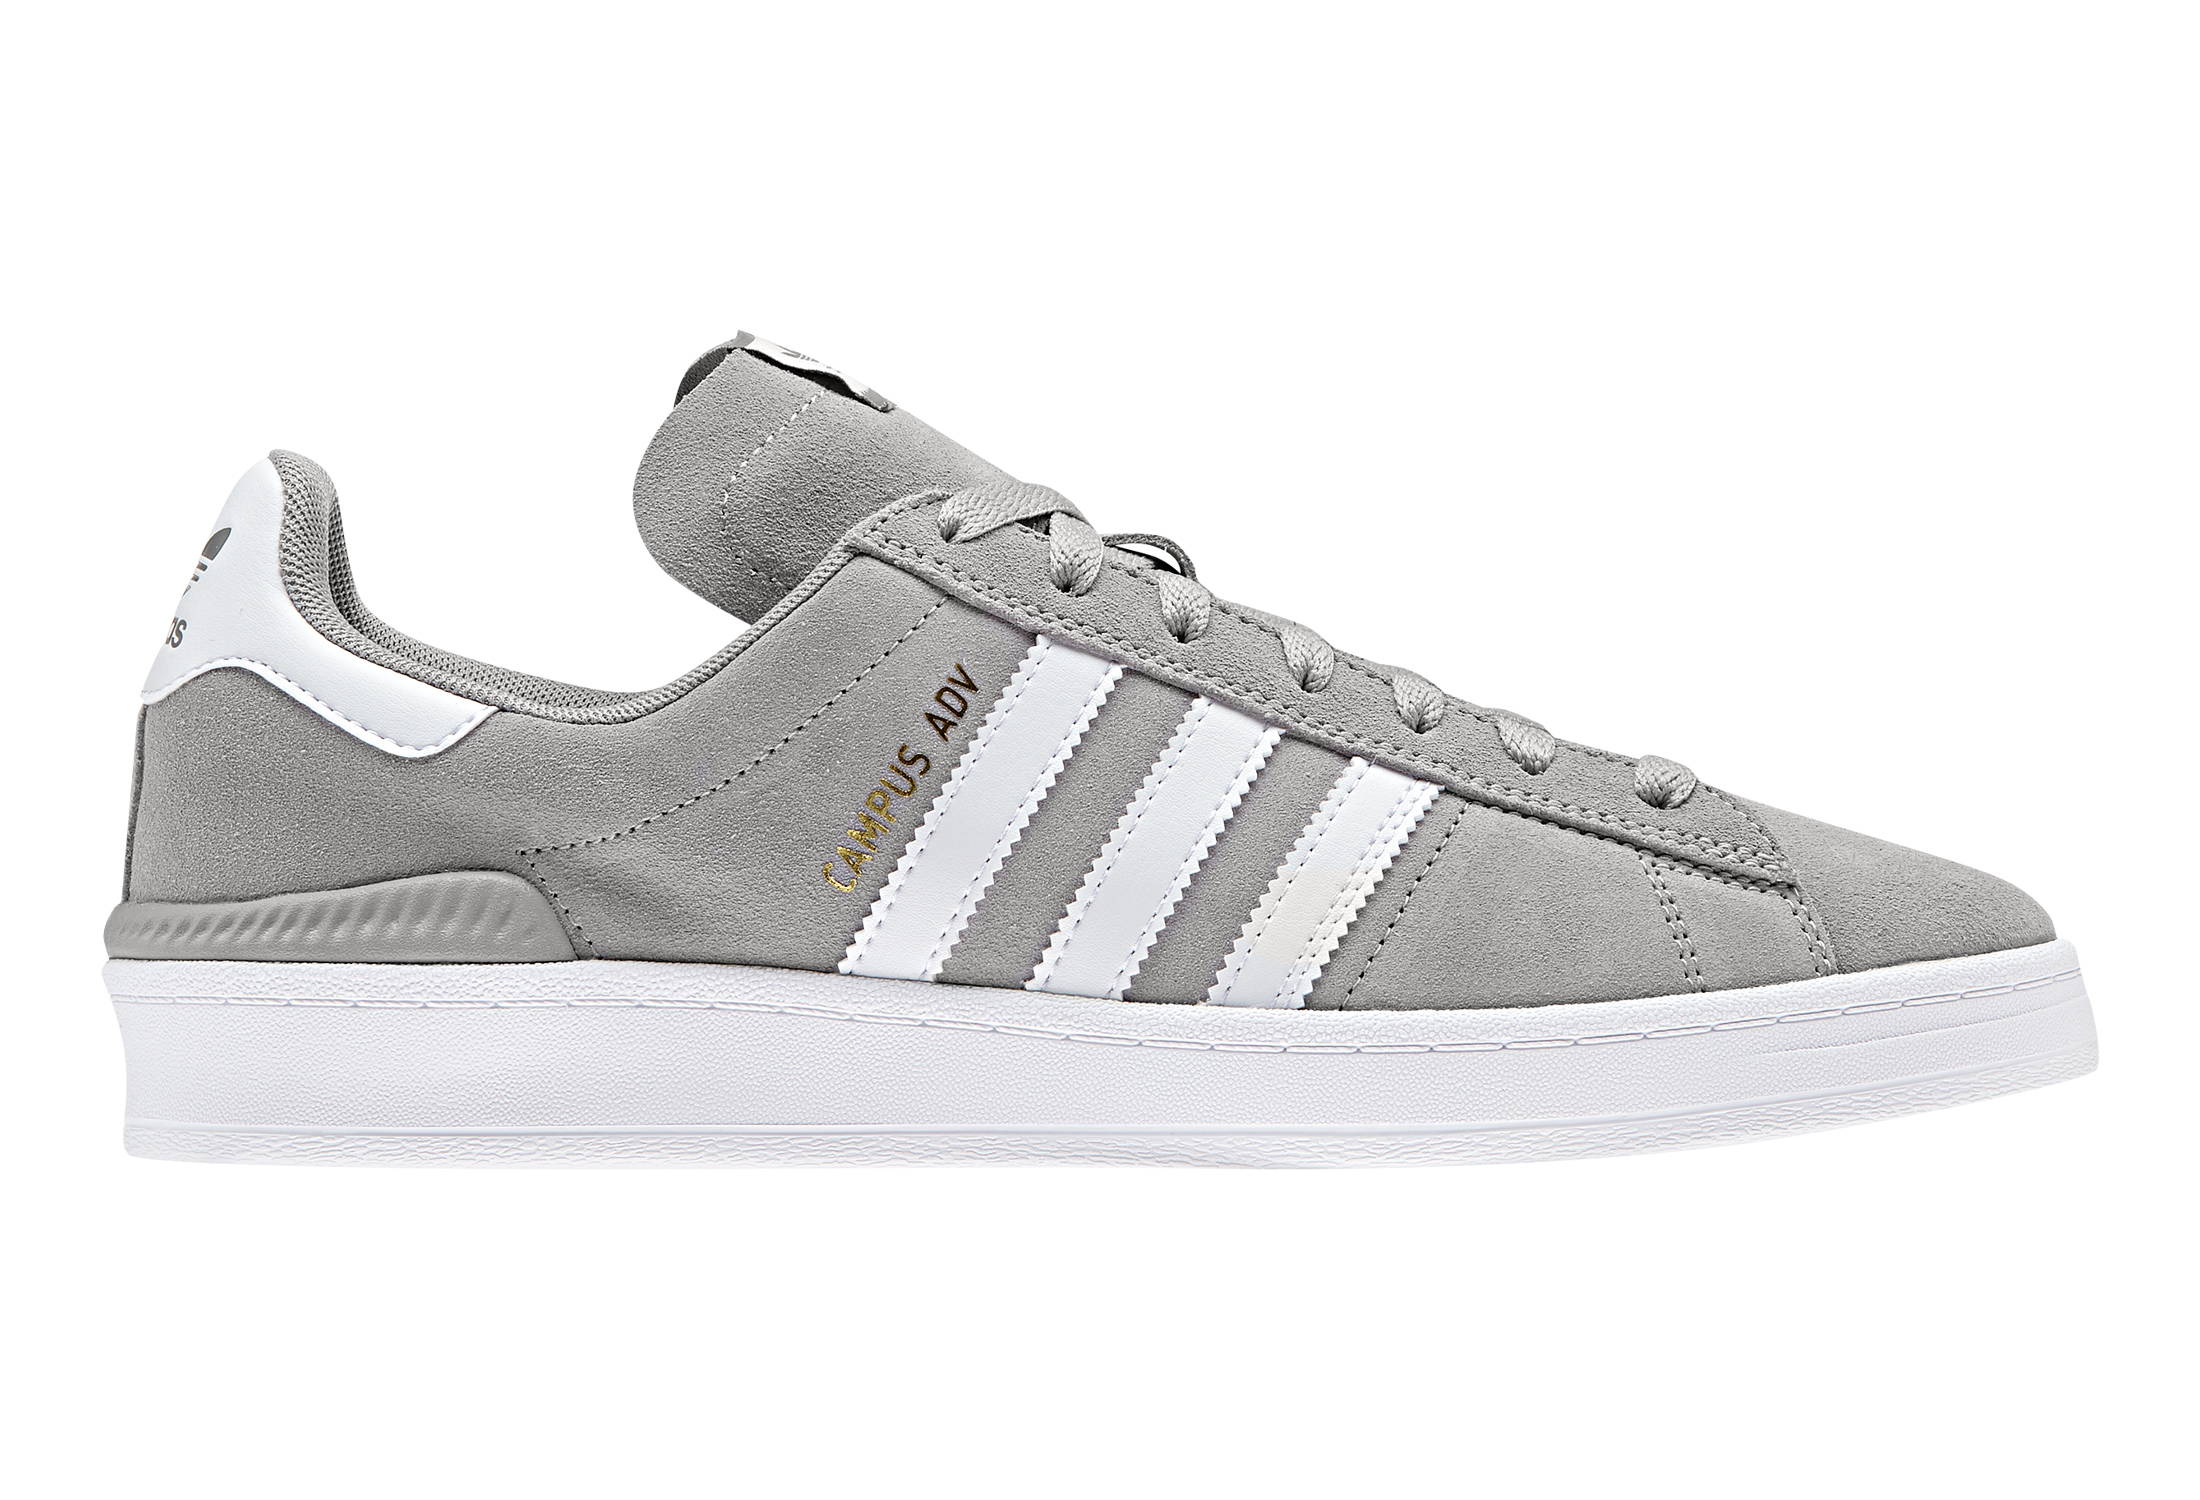 best loved d8ed0 32c9b Adidas Campus ADV Skate Shoes     Mens   The Board Basement